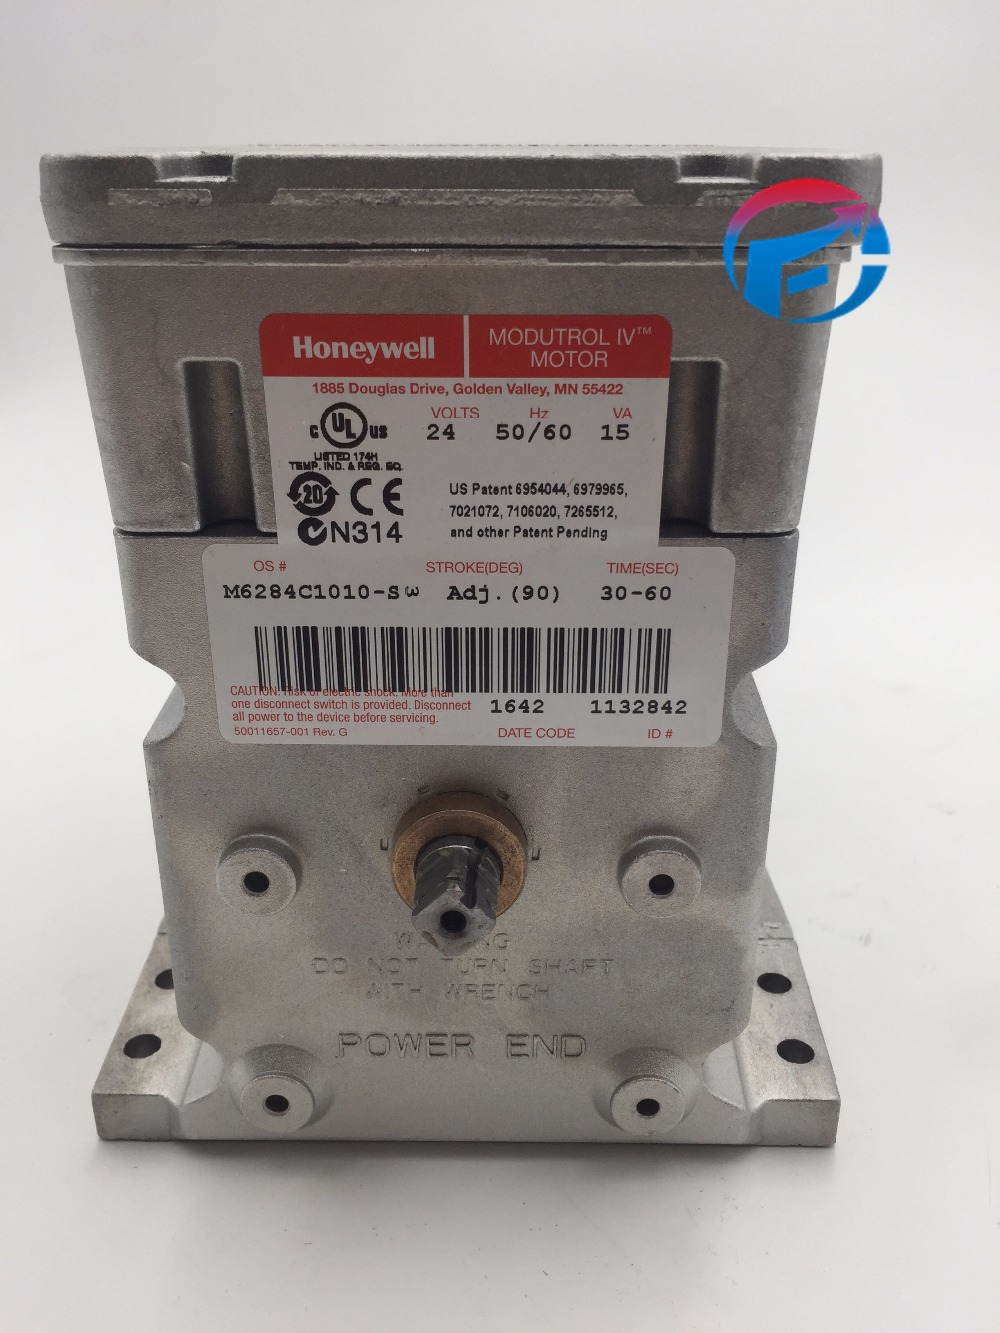 1pcs Series 42 Stepper Motor Stepping 42byghw609 40mm 13a 18 Modutrol Wiring Diagram M6284c1010 17nm Honeywell Damper Actuators Iv Motors For Burner New Original